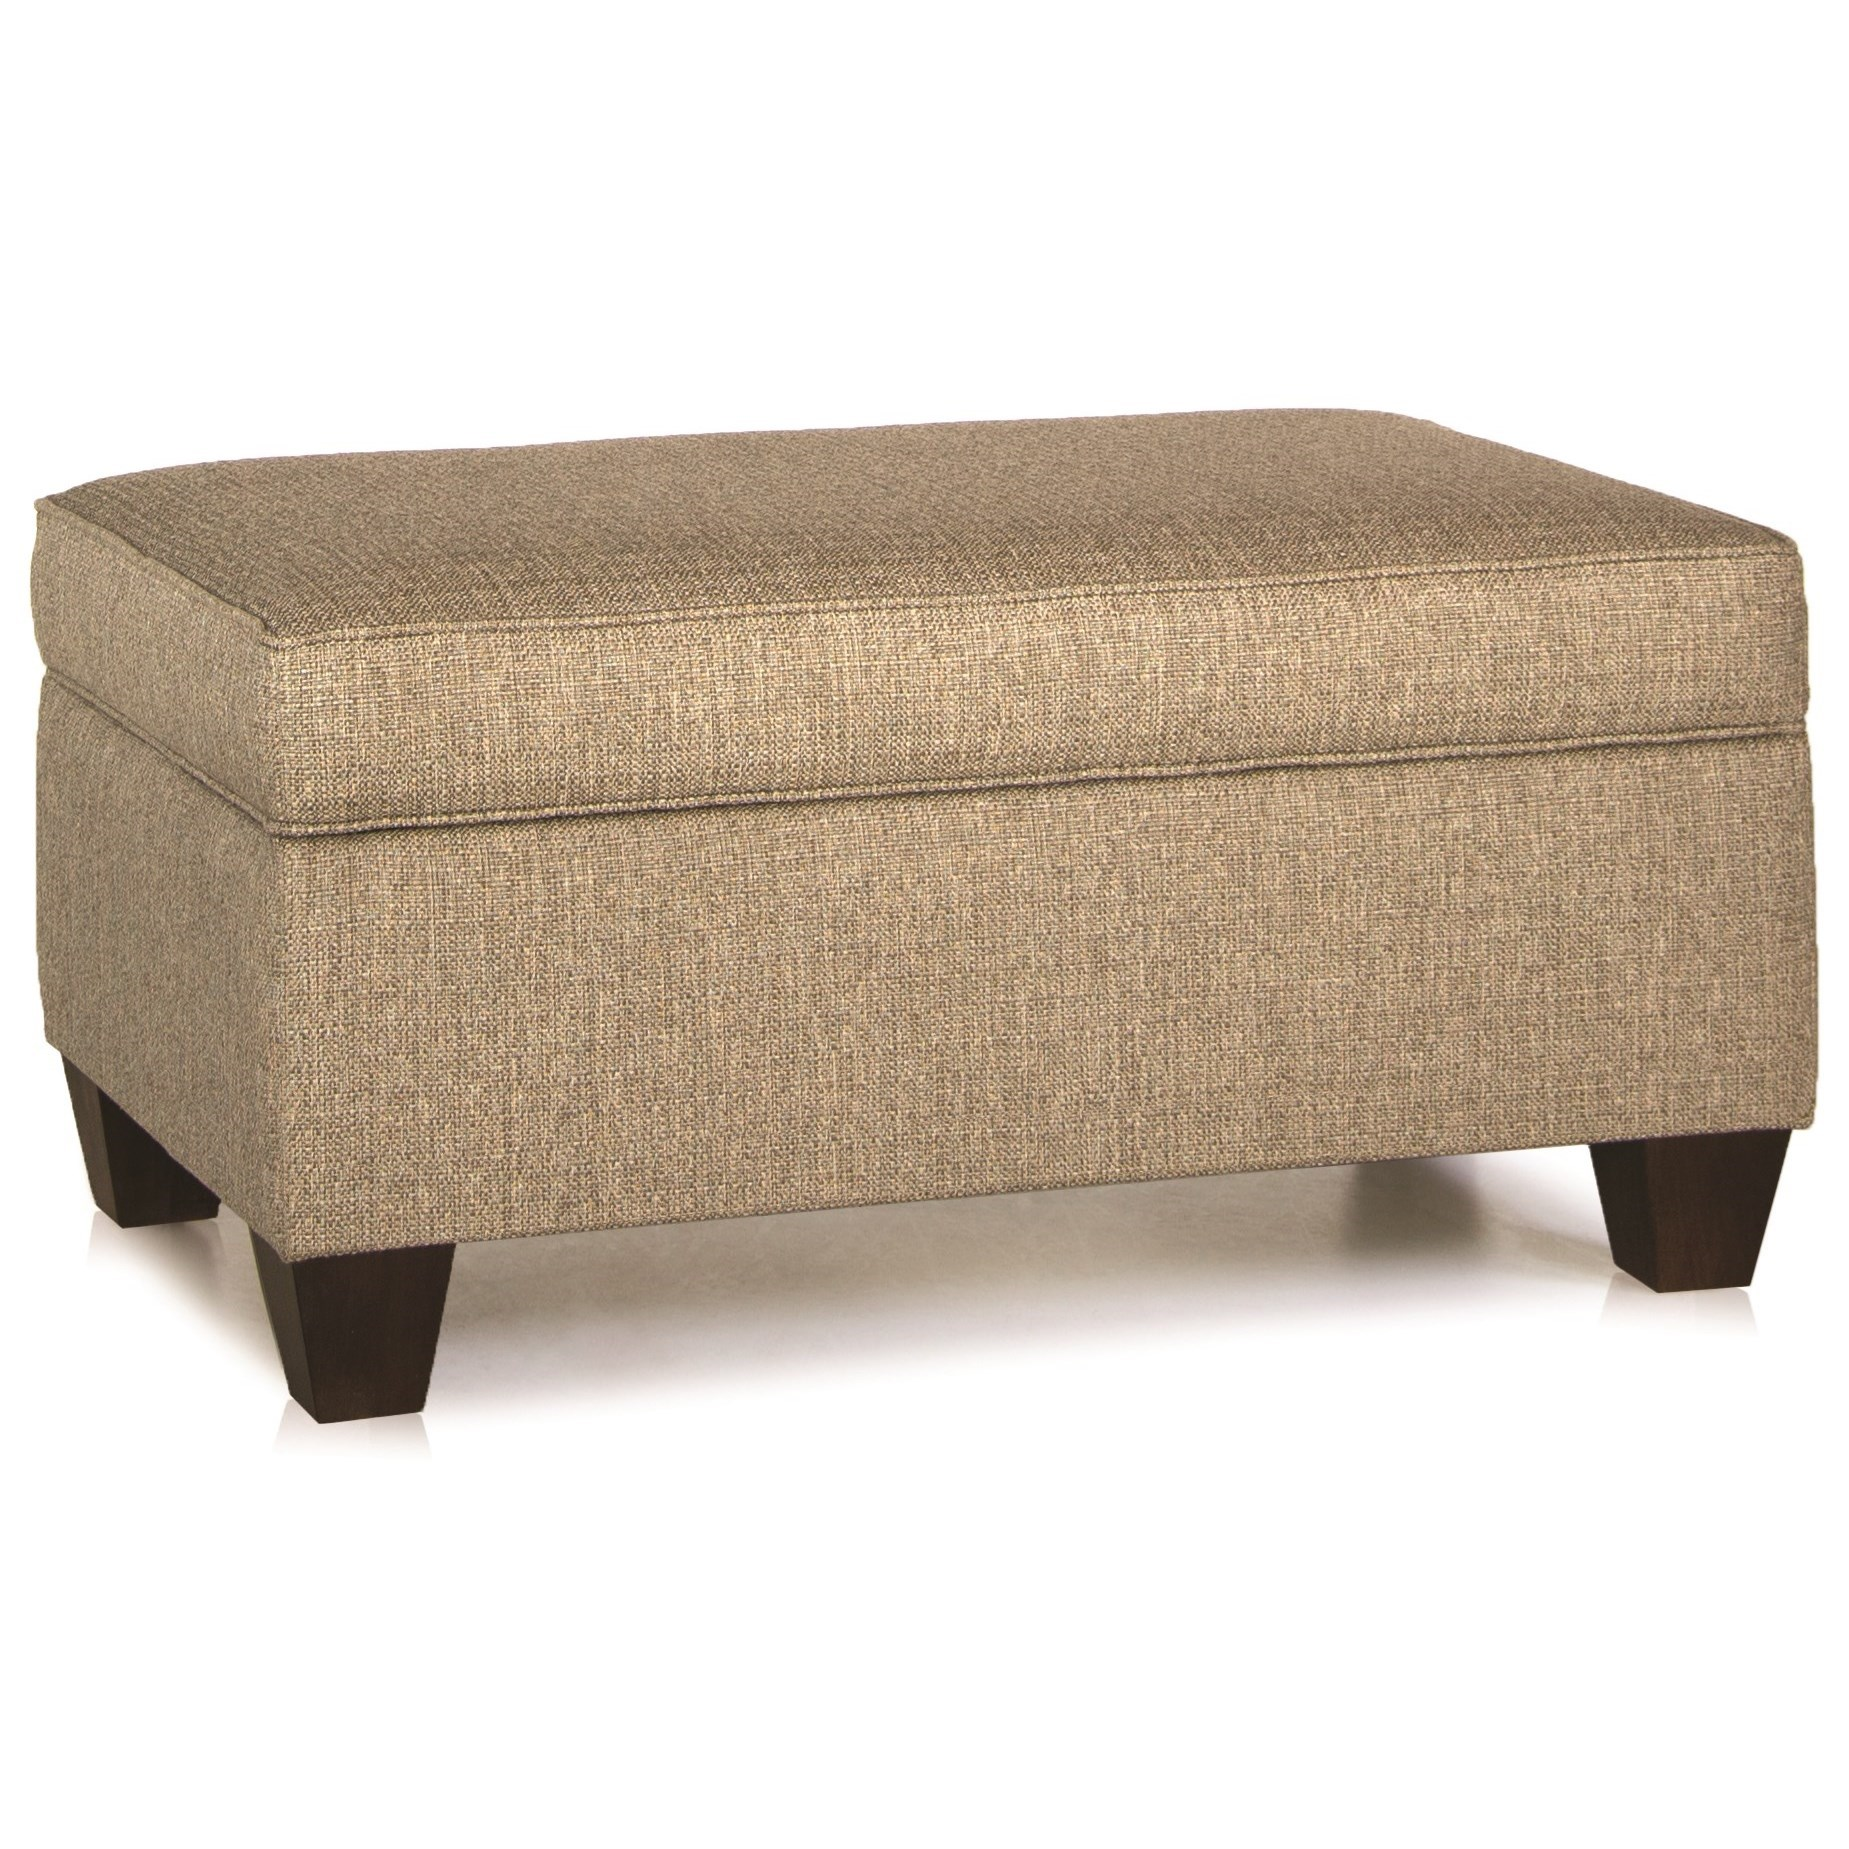 900 Storage Ottoman by Smith Brothers at Sprintz Furniture